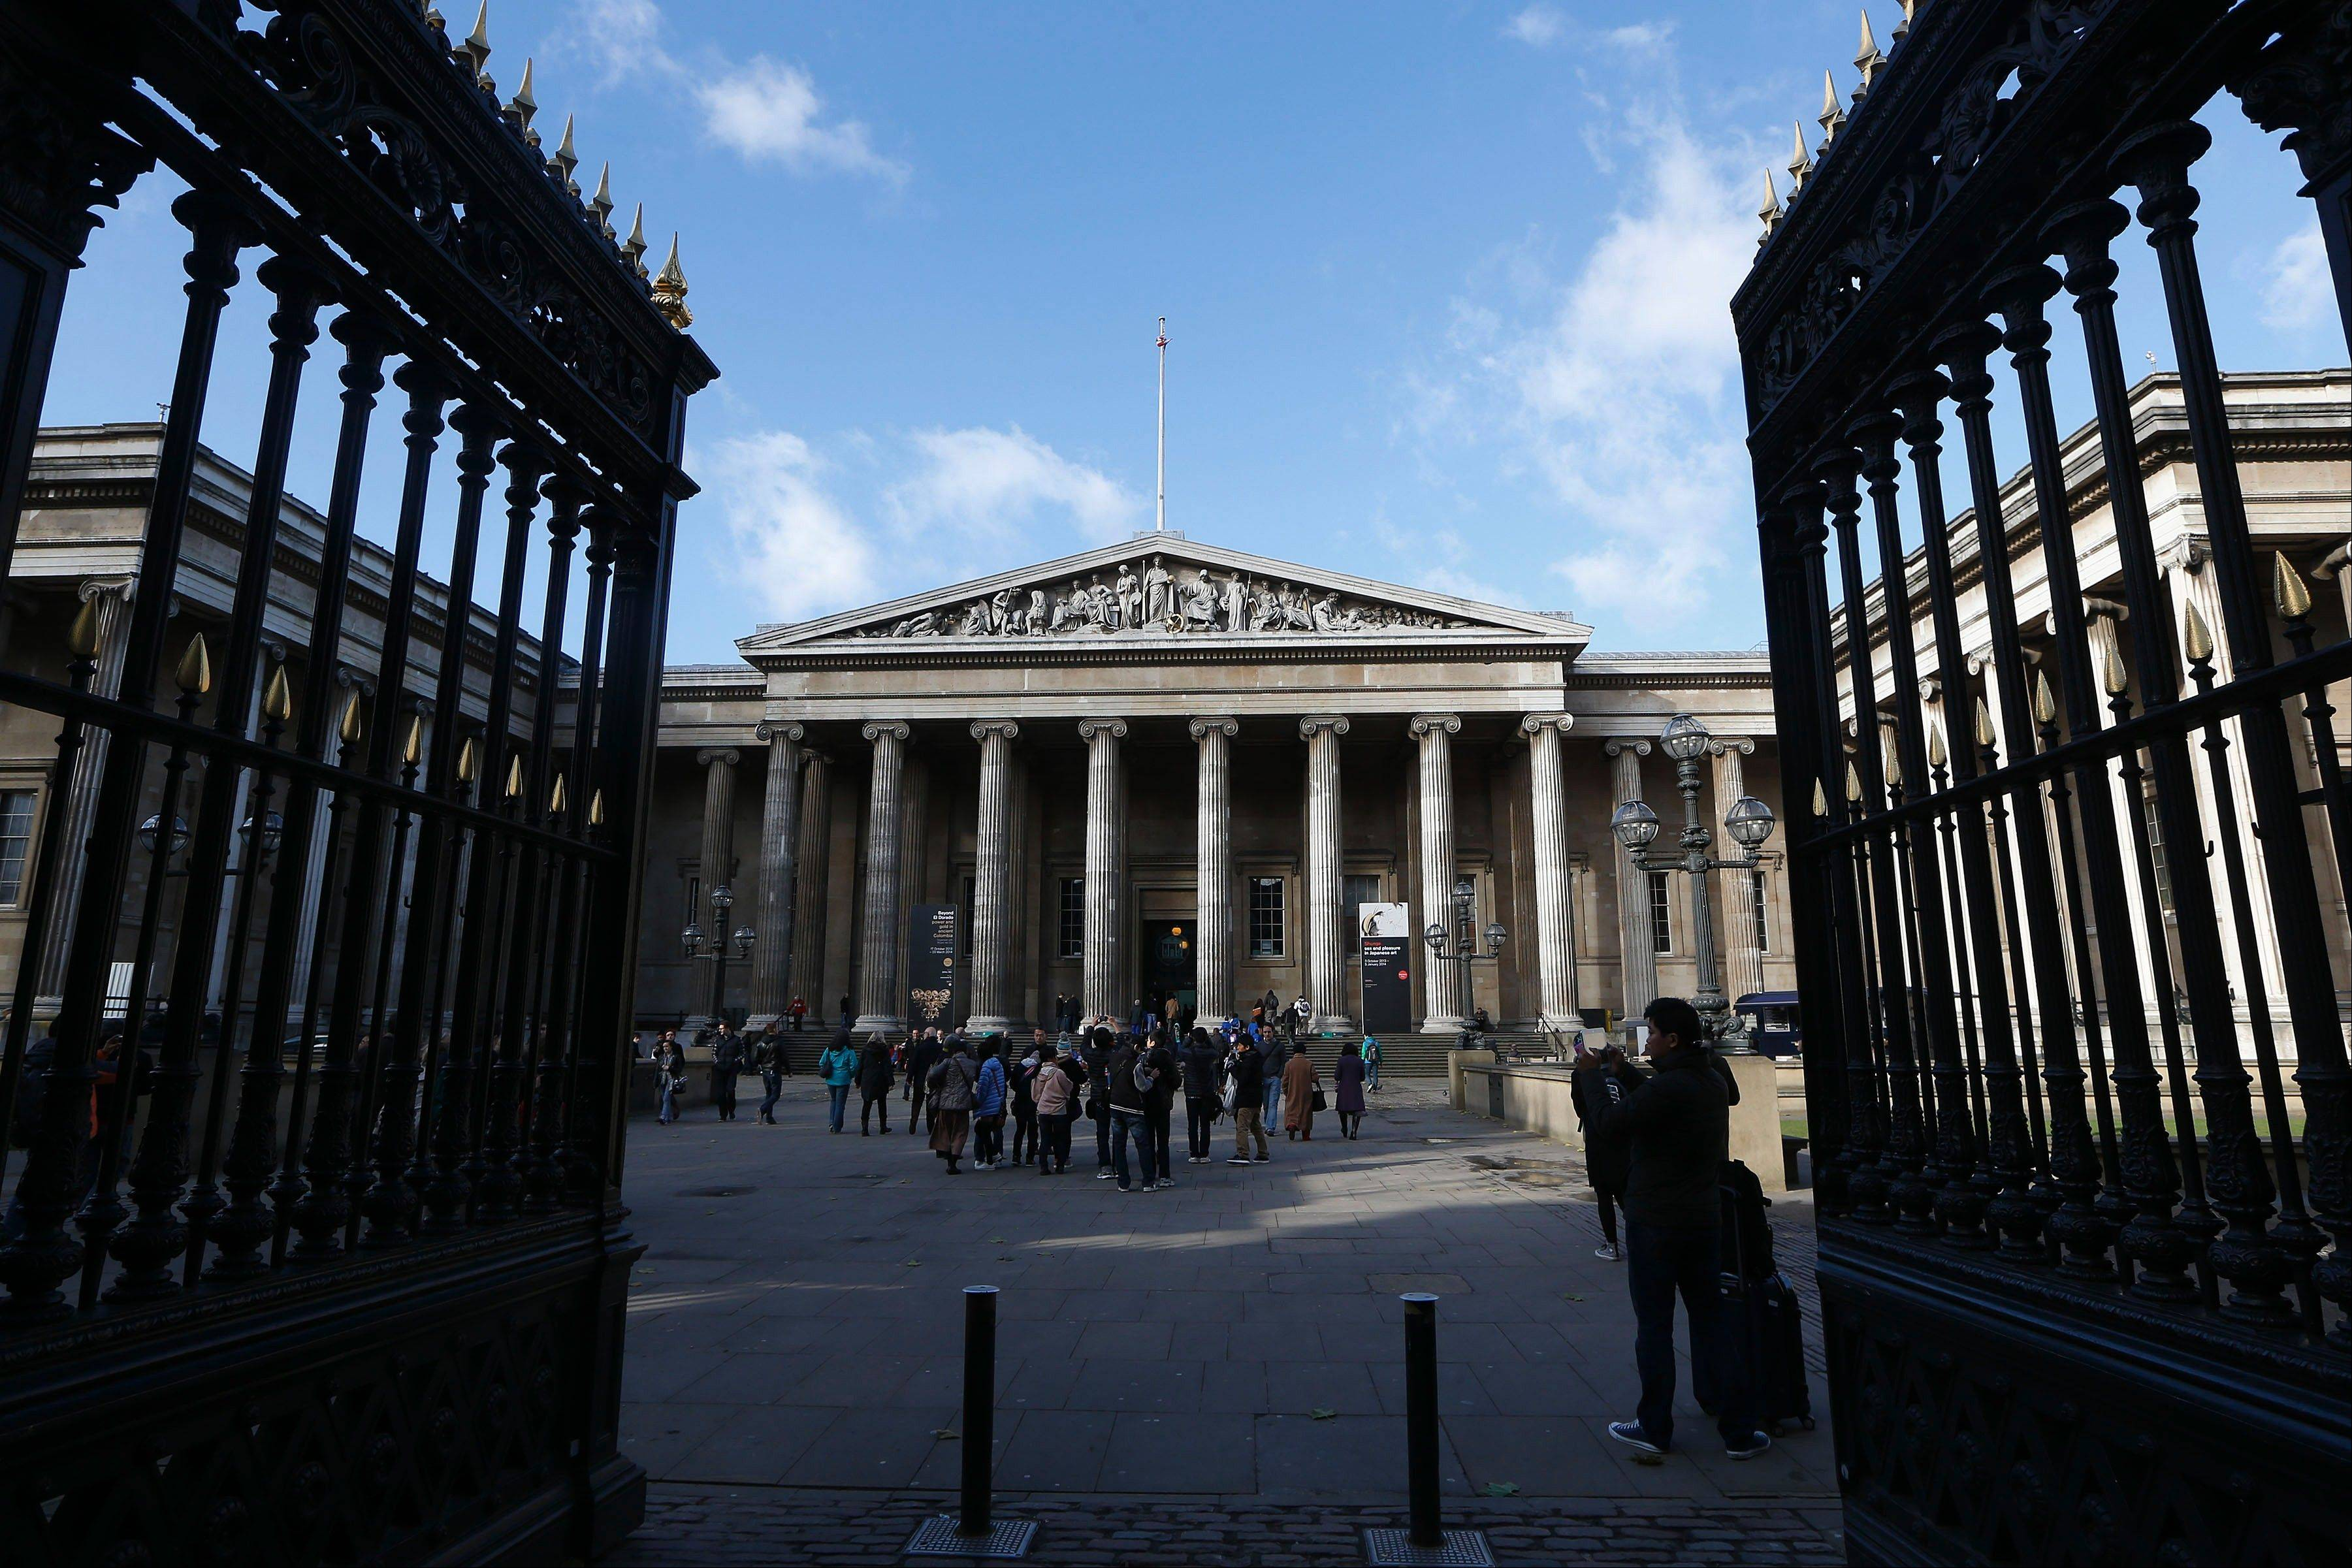 Visitors to the British Museum in London can see Egyptian mummies, Greek friezes, drawings by Leonardo da Vinci and more, all for free.